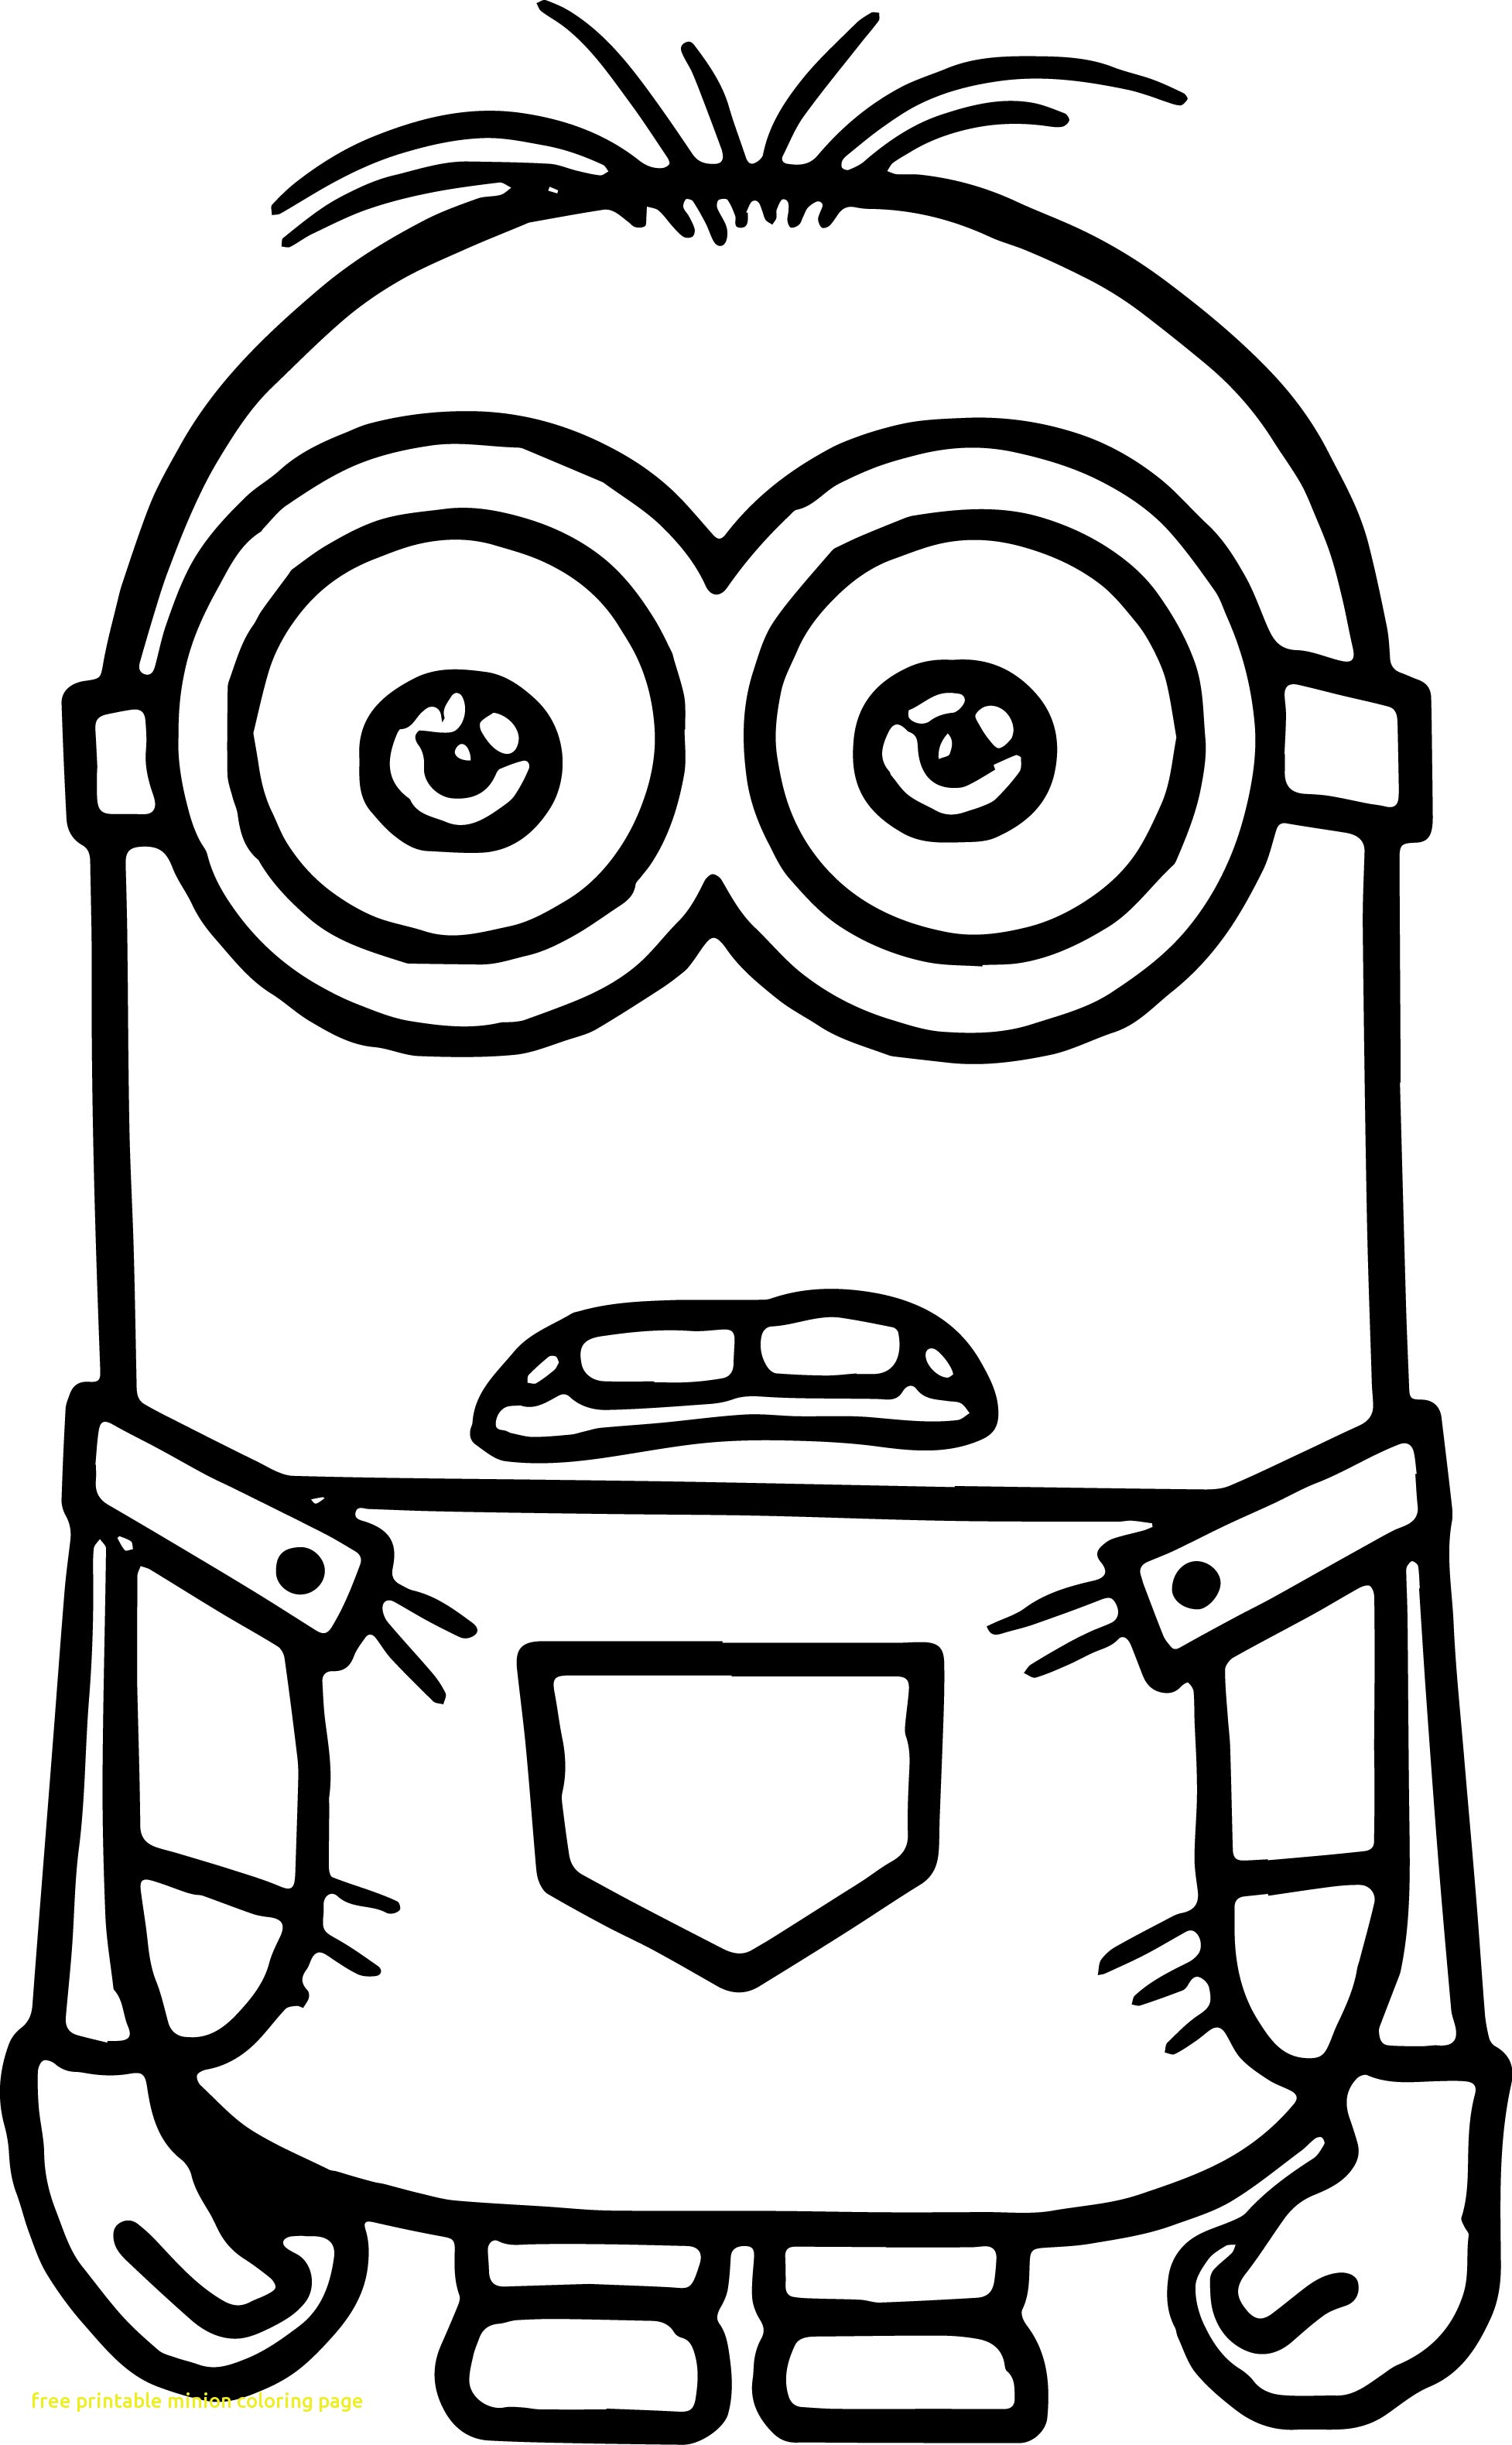 Minion Coloring Pages Free Printable Minion Coloring Pages Coloring